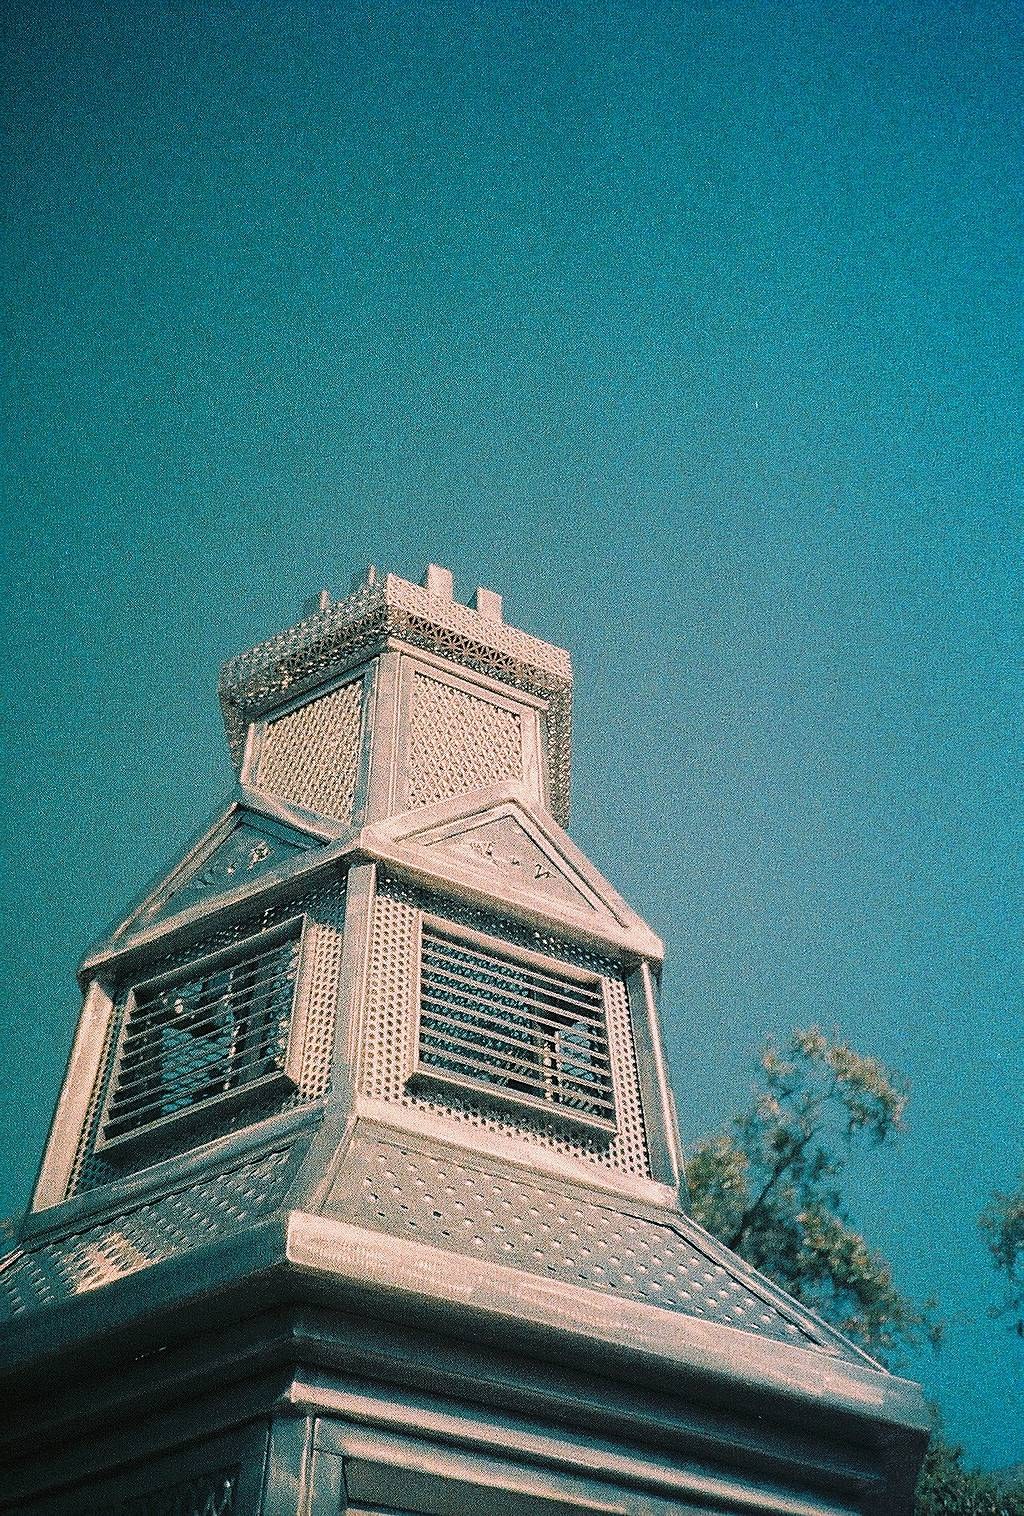 Adox Color Implosion: Great Grain and Beautiful Blues